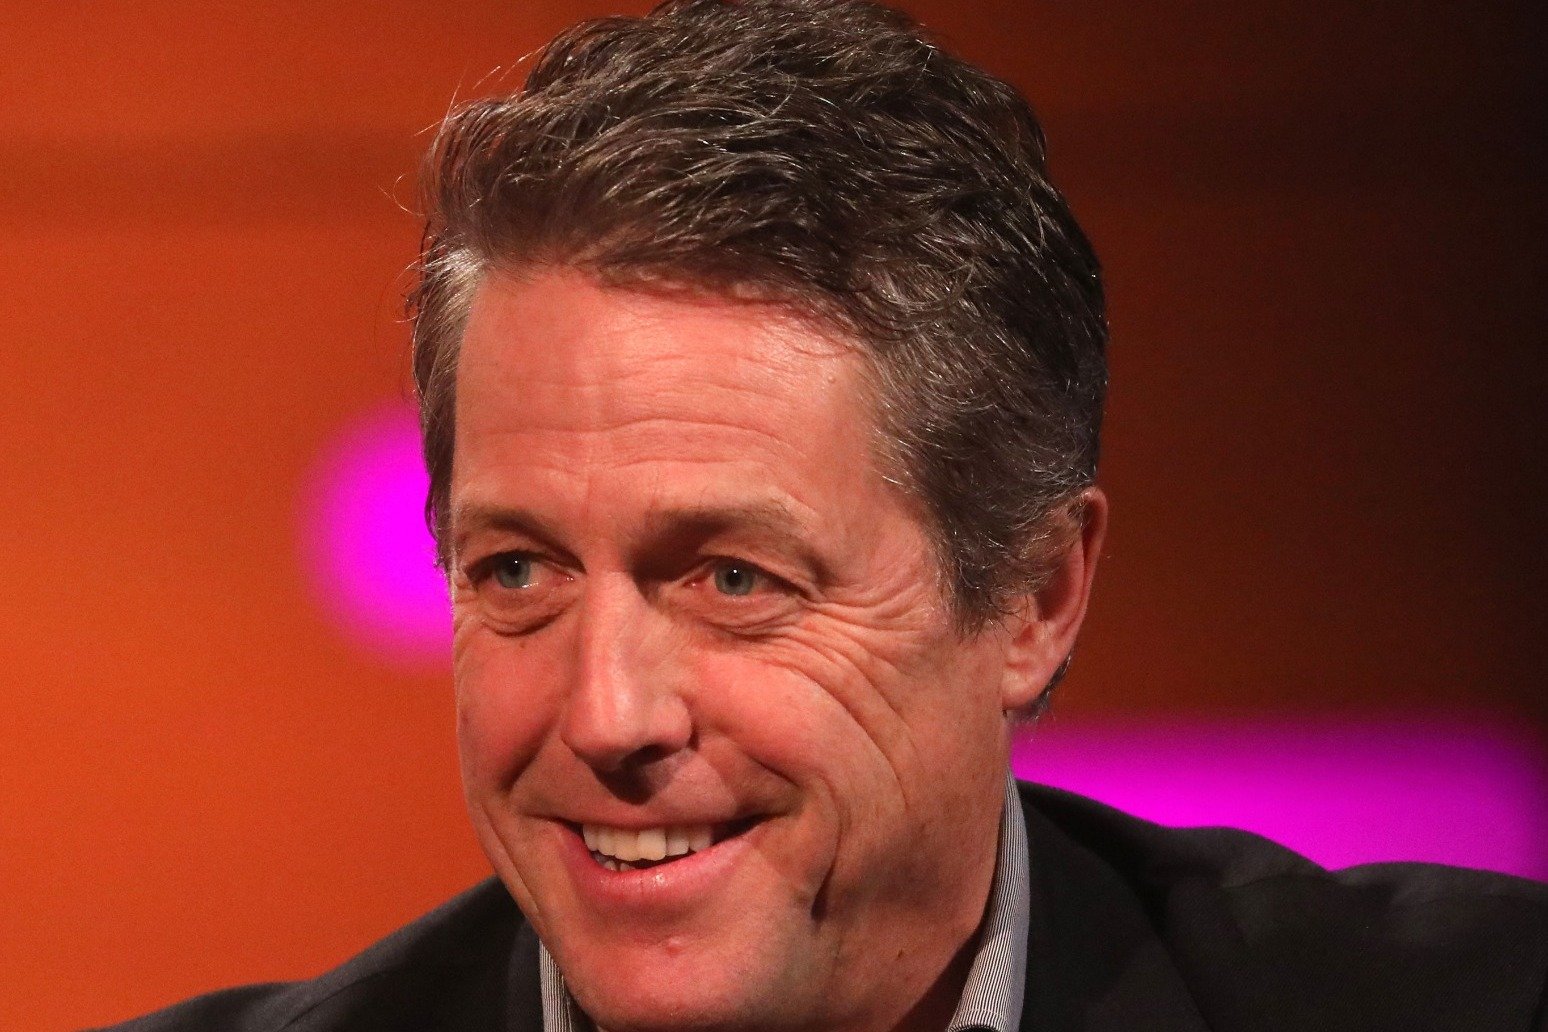 HUGH GRANT ON BENEFITS OF BEING \'TOO OLD AND UGLY\' FOR ROM-COMS